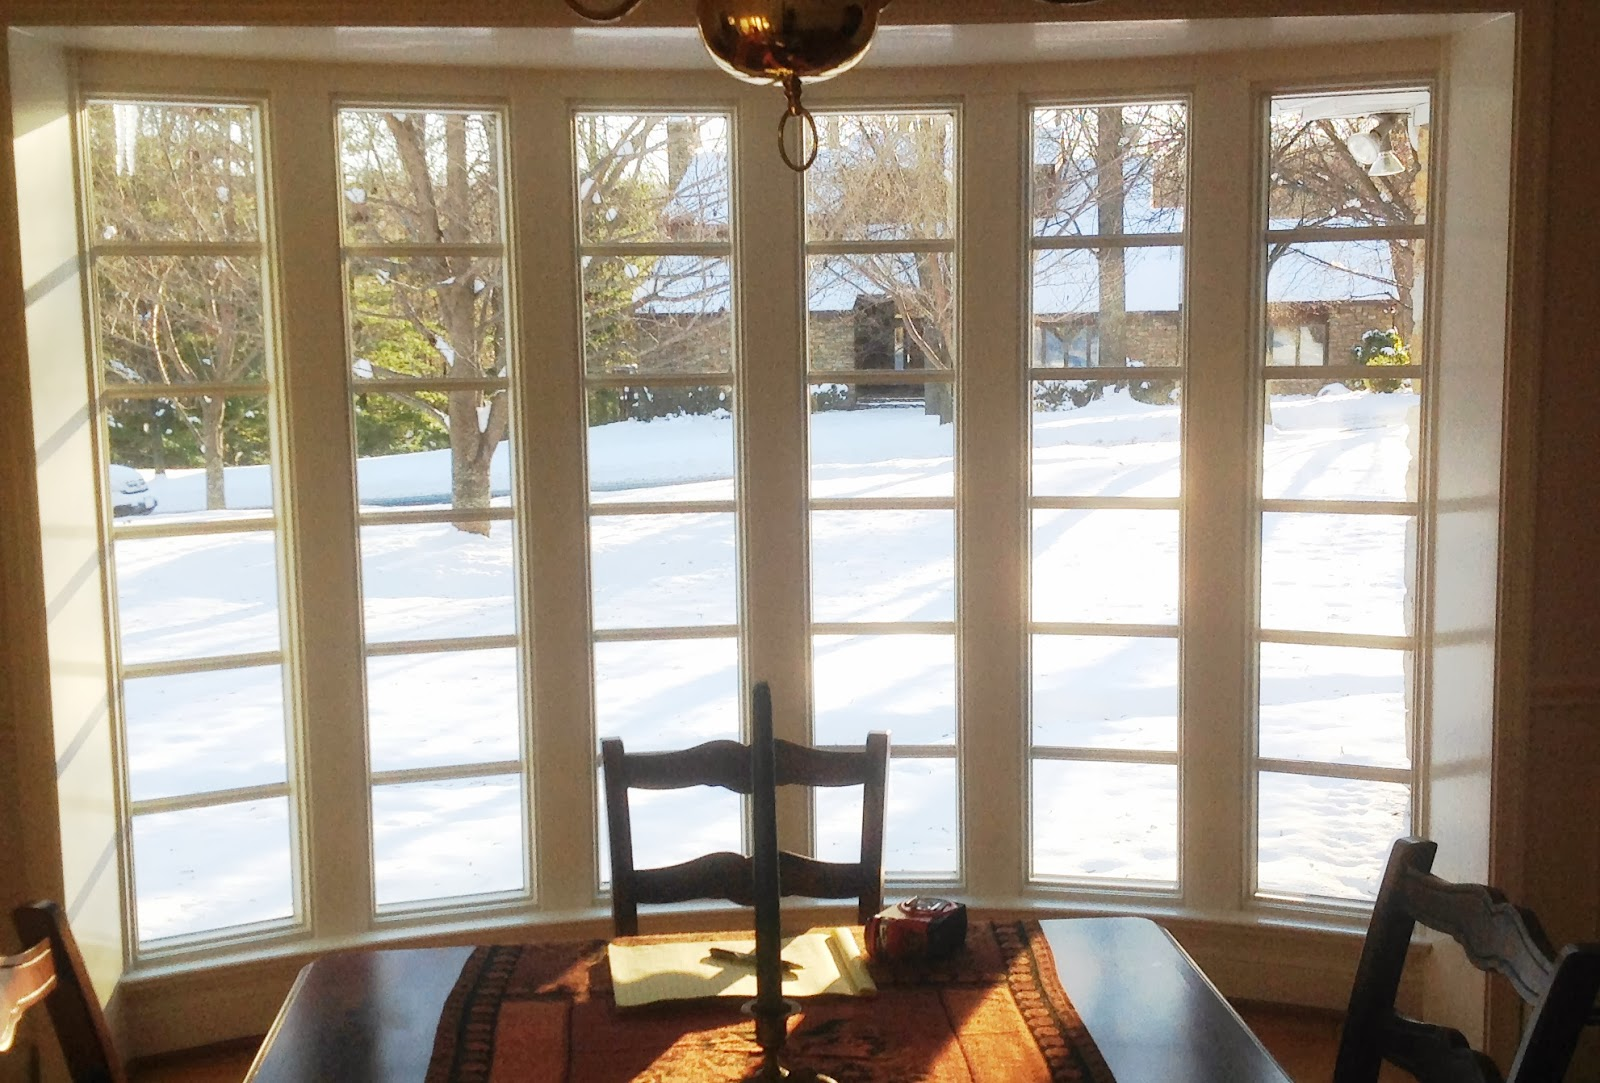 Curtain trend babble window treatments for bay windows for Bay window treatments